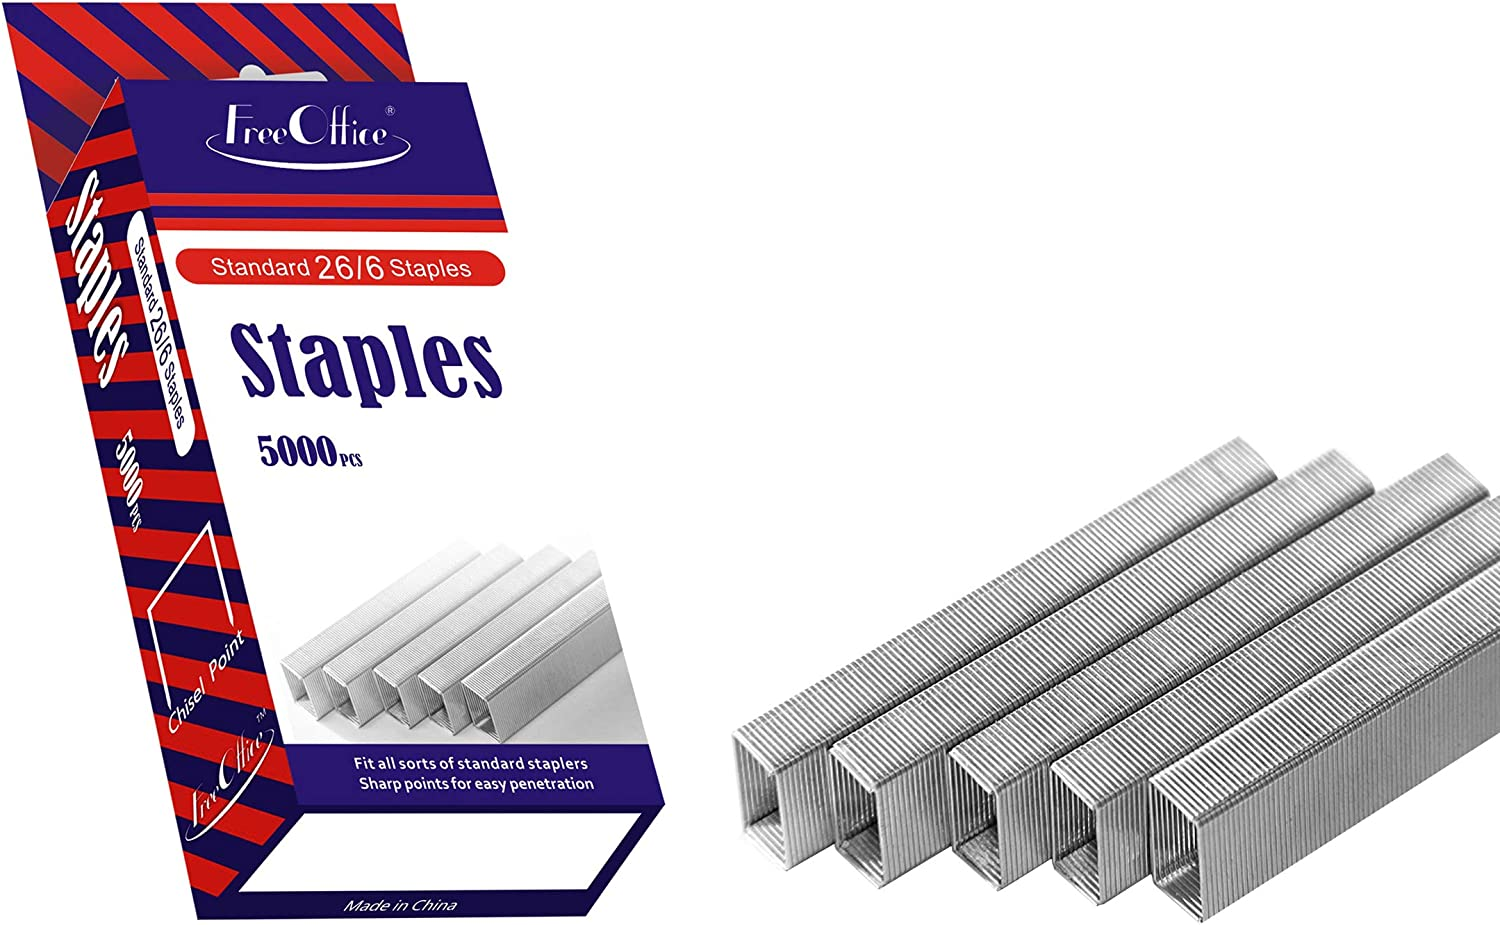 Standard Staples 26/6 1/4In Leg Length Free Office 5000PCS per Pack